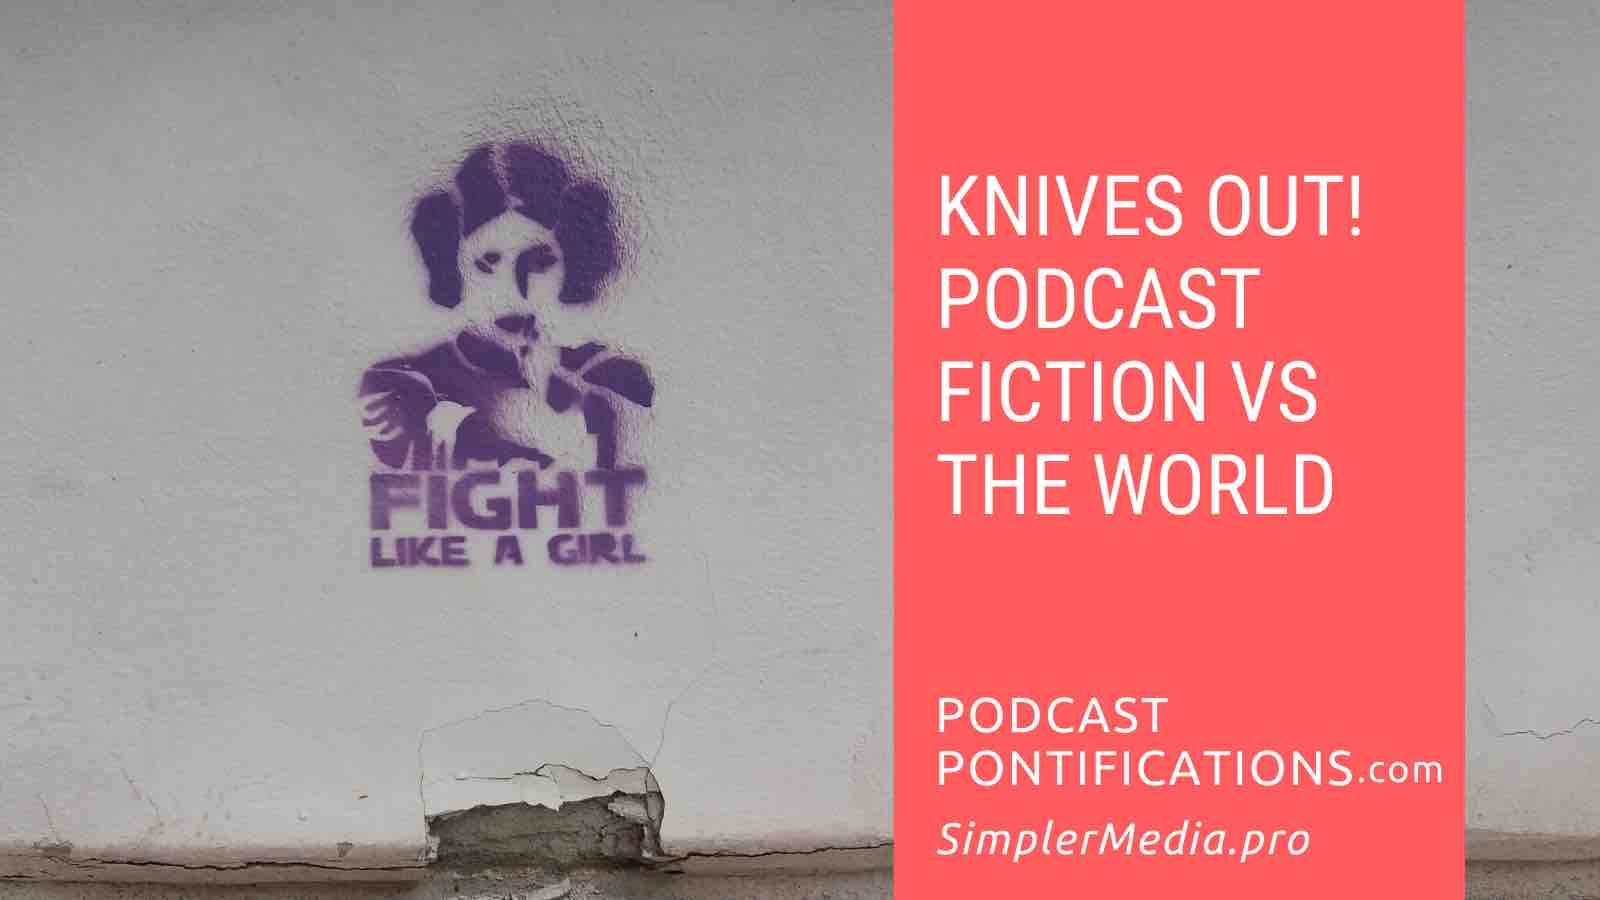 Knives Out! Podcast Fiction Vs The World